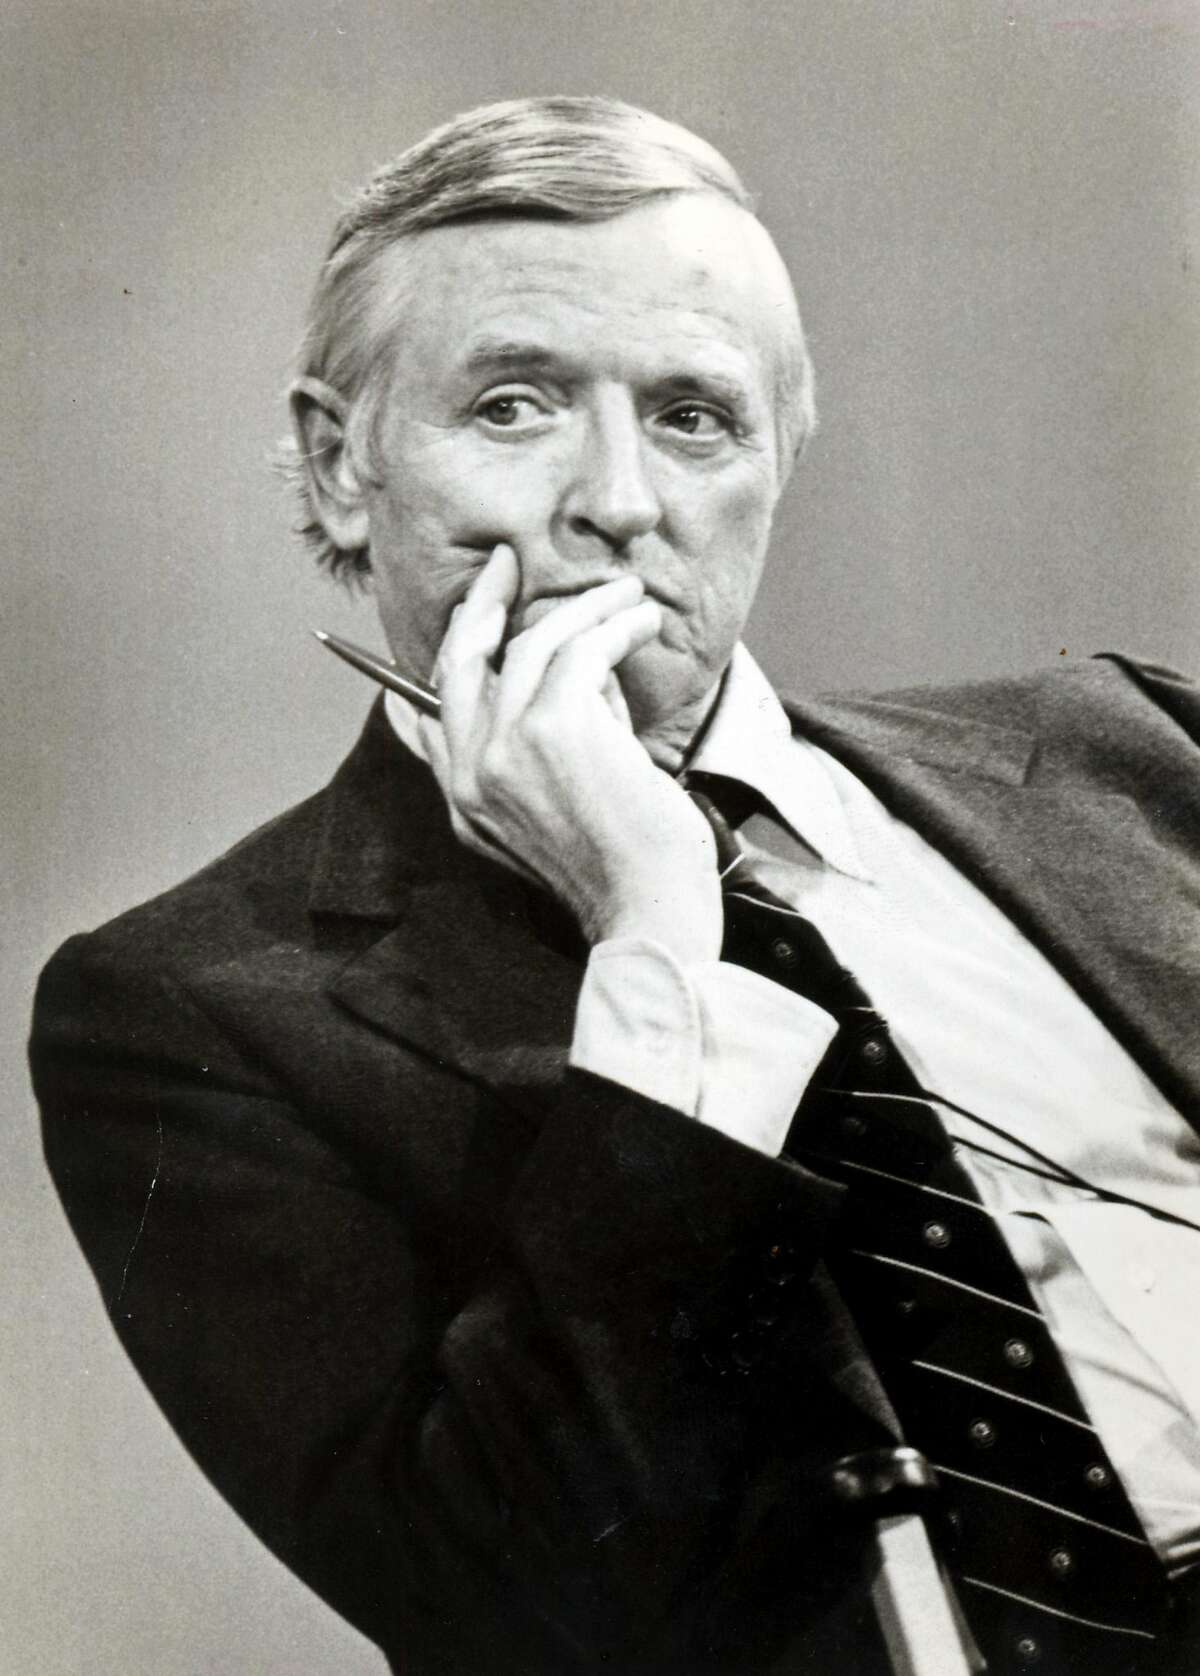 """PBS promotional shot of William F. Buckley Jr. for his TV show """"Firing Line"""""""